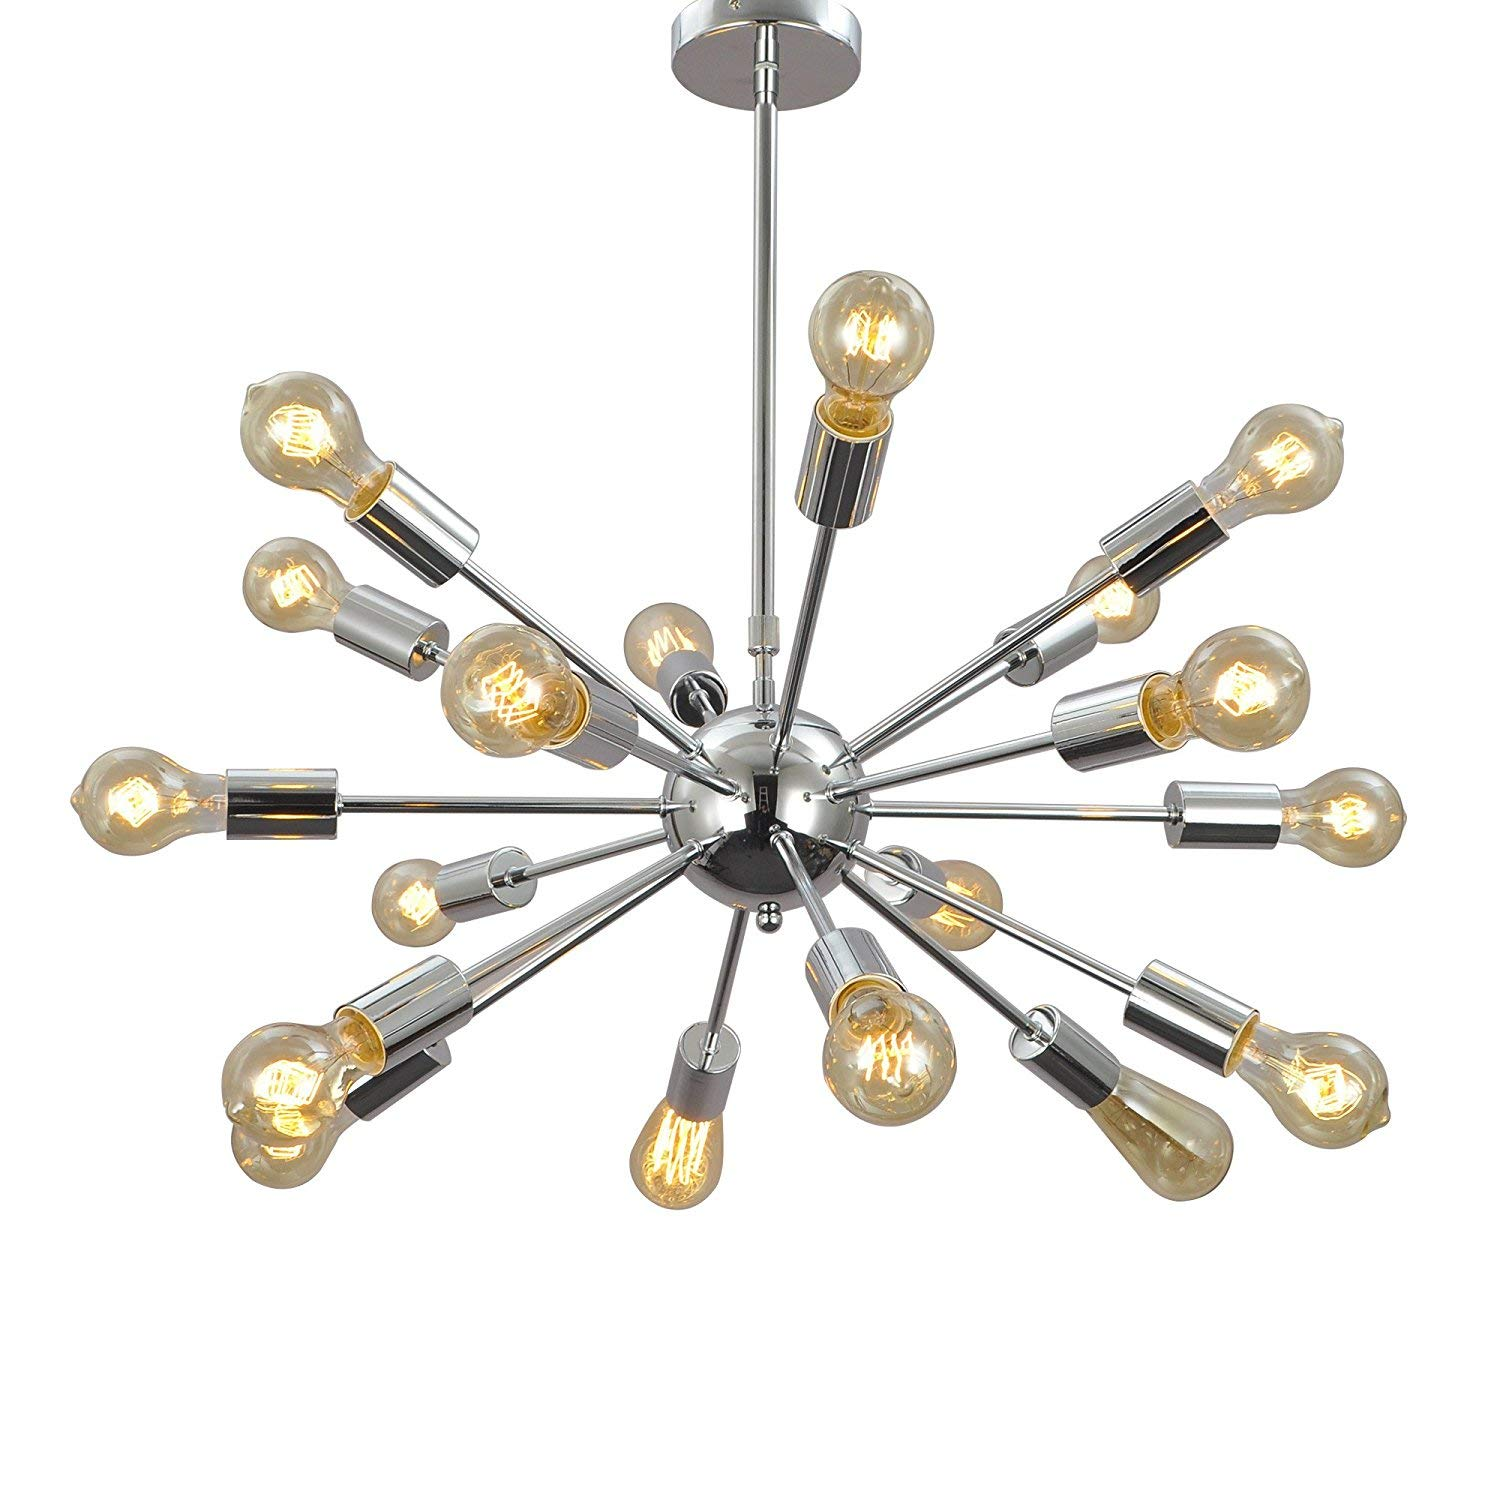 Aero Snail 1621S-18 Silver Vintage Retro Industrial Theme Metal Large Pendant Hanging Light Ceiling Lamp Chandelier 18 Lights Chrome Finish ( Arm Wires PRE-CONNECTED)